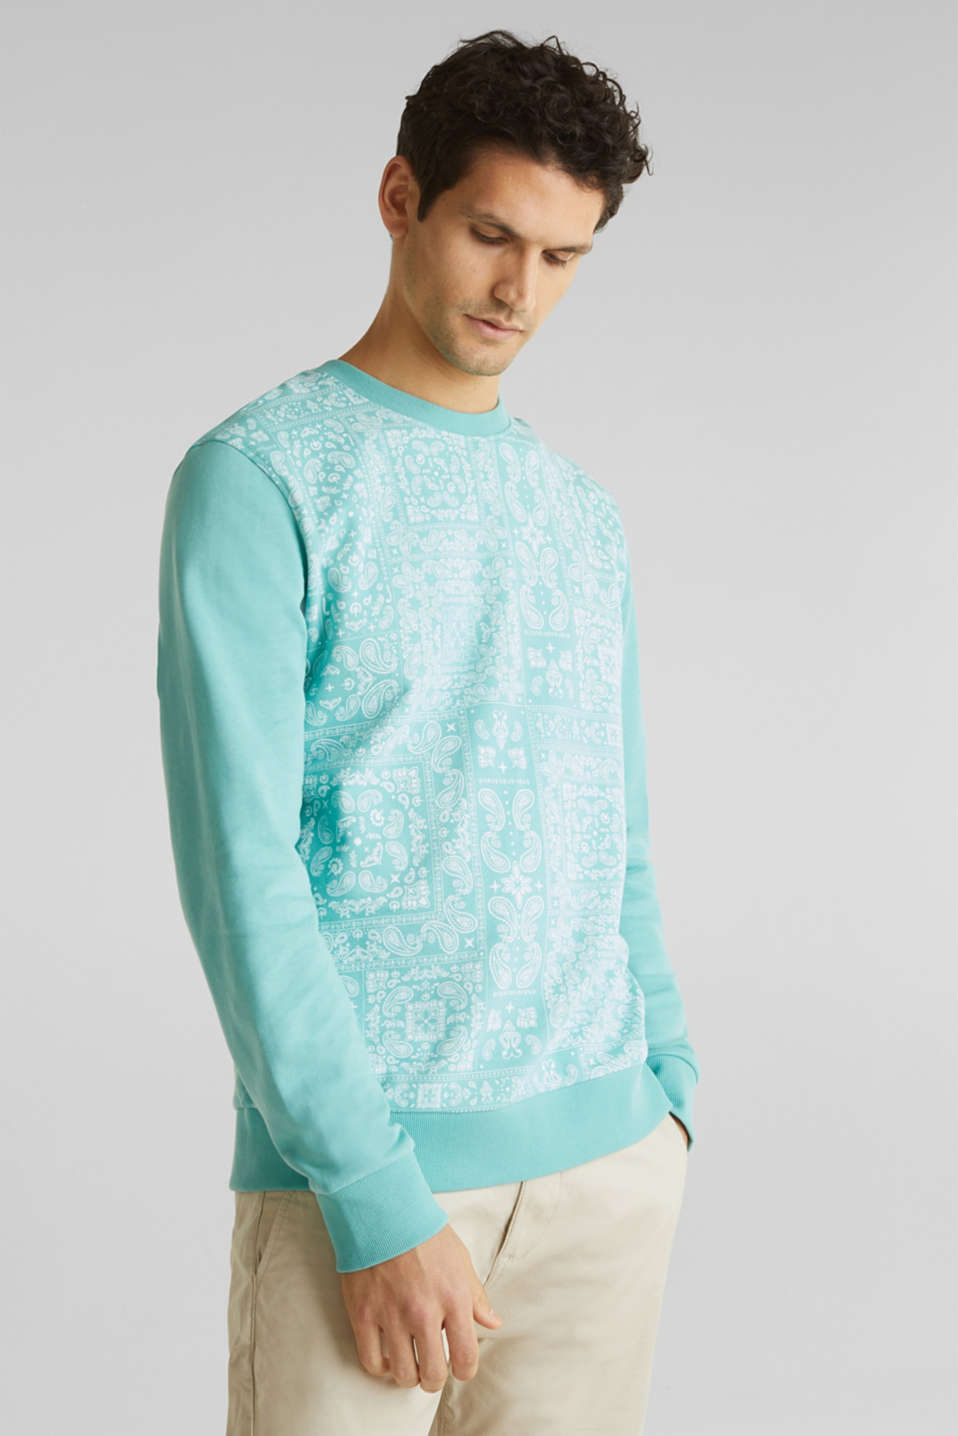 Esprit - Sweatshirt with a paisley print, 100% cotton